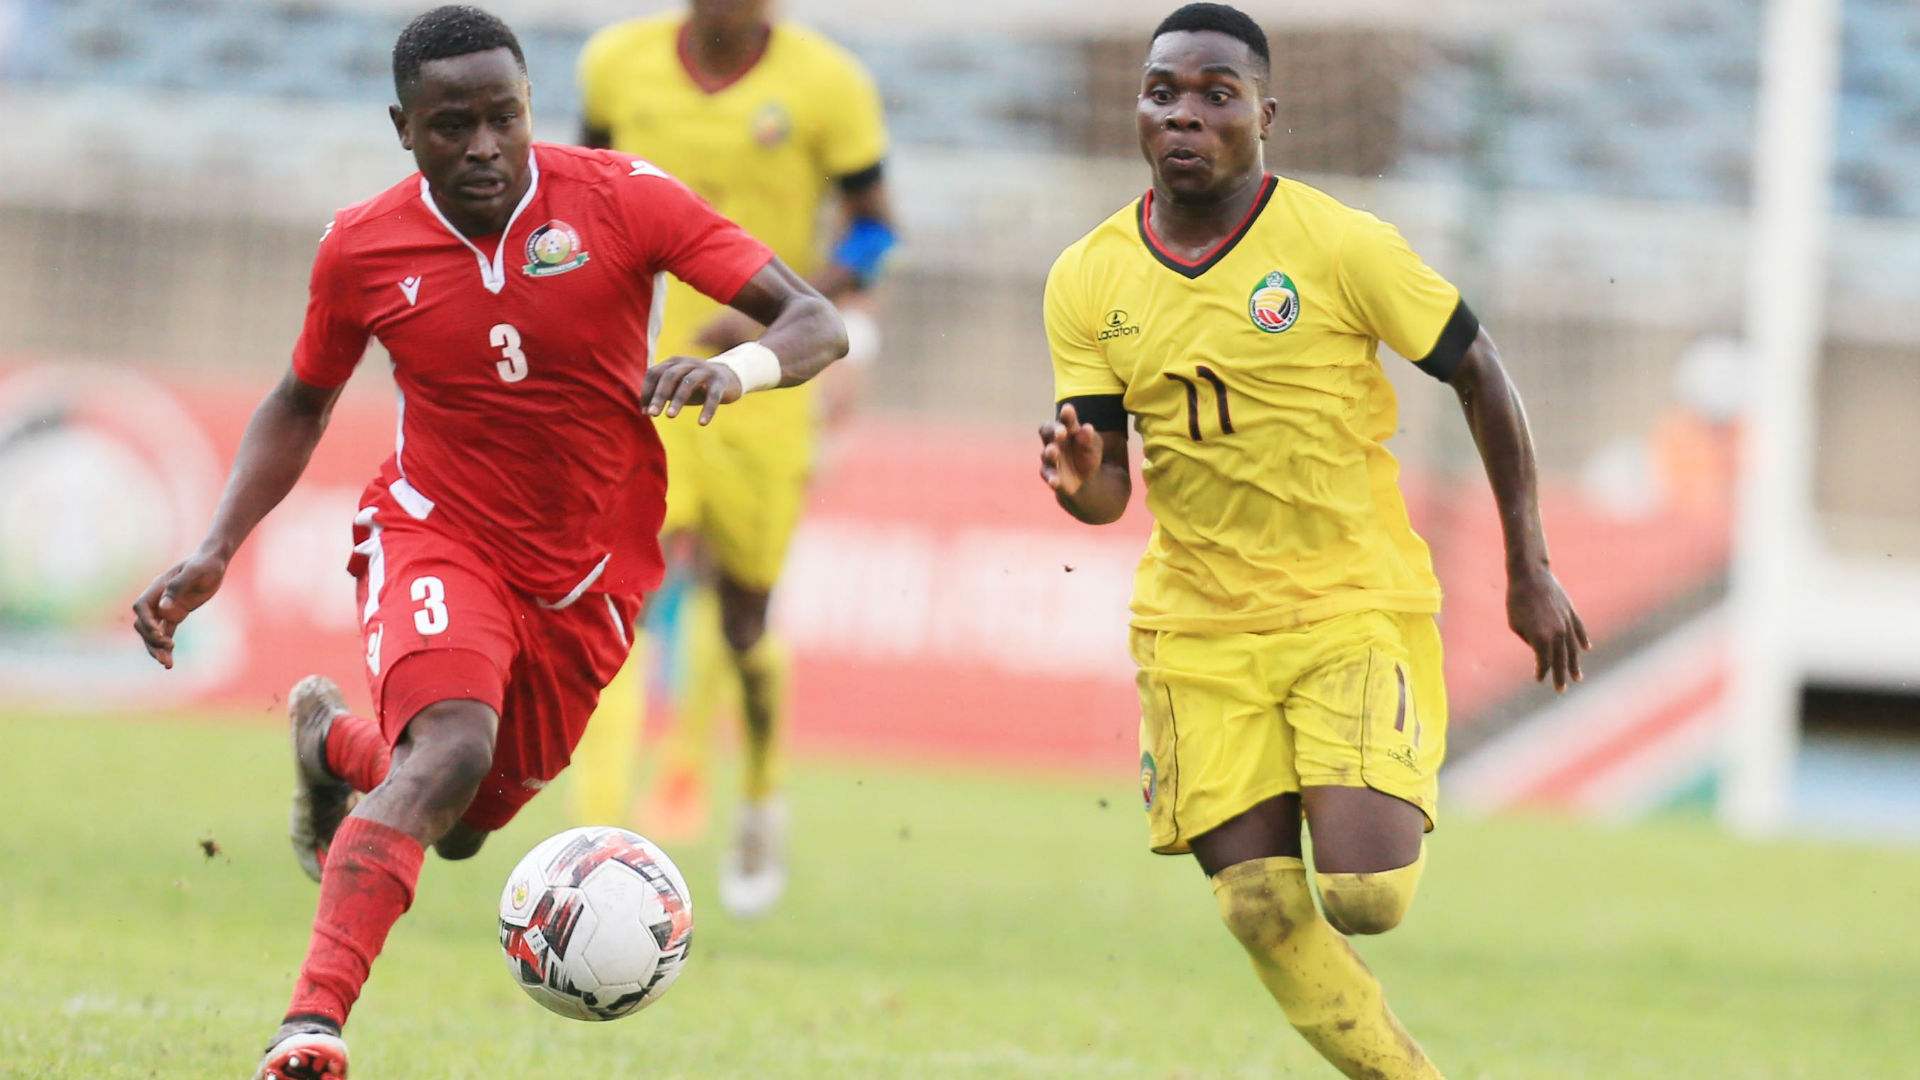 Afcon 2021 Qualifiers: Harambee Stars must play without fear vs Egypt – Kimanzi